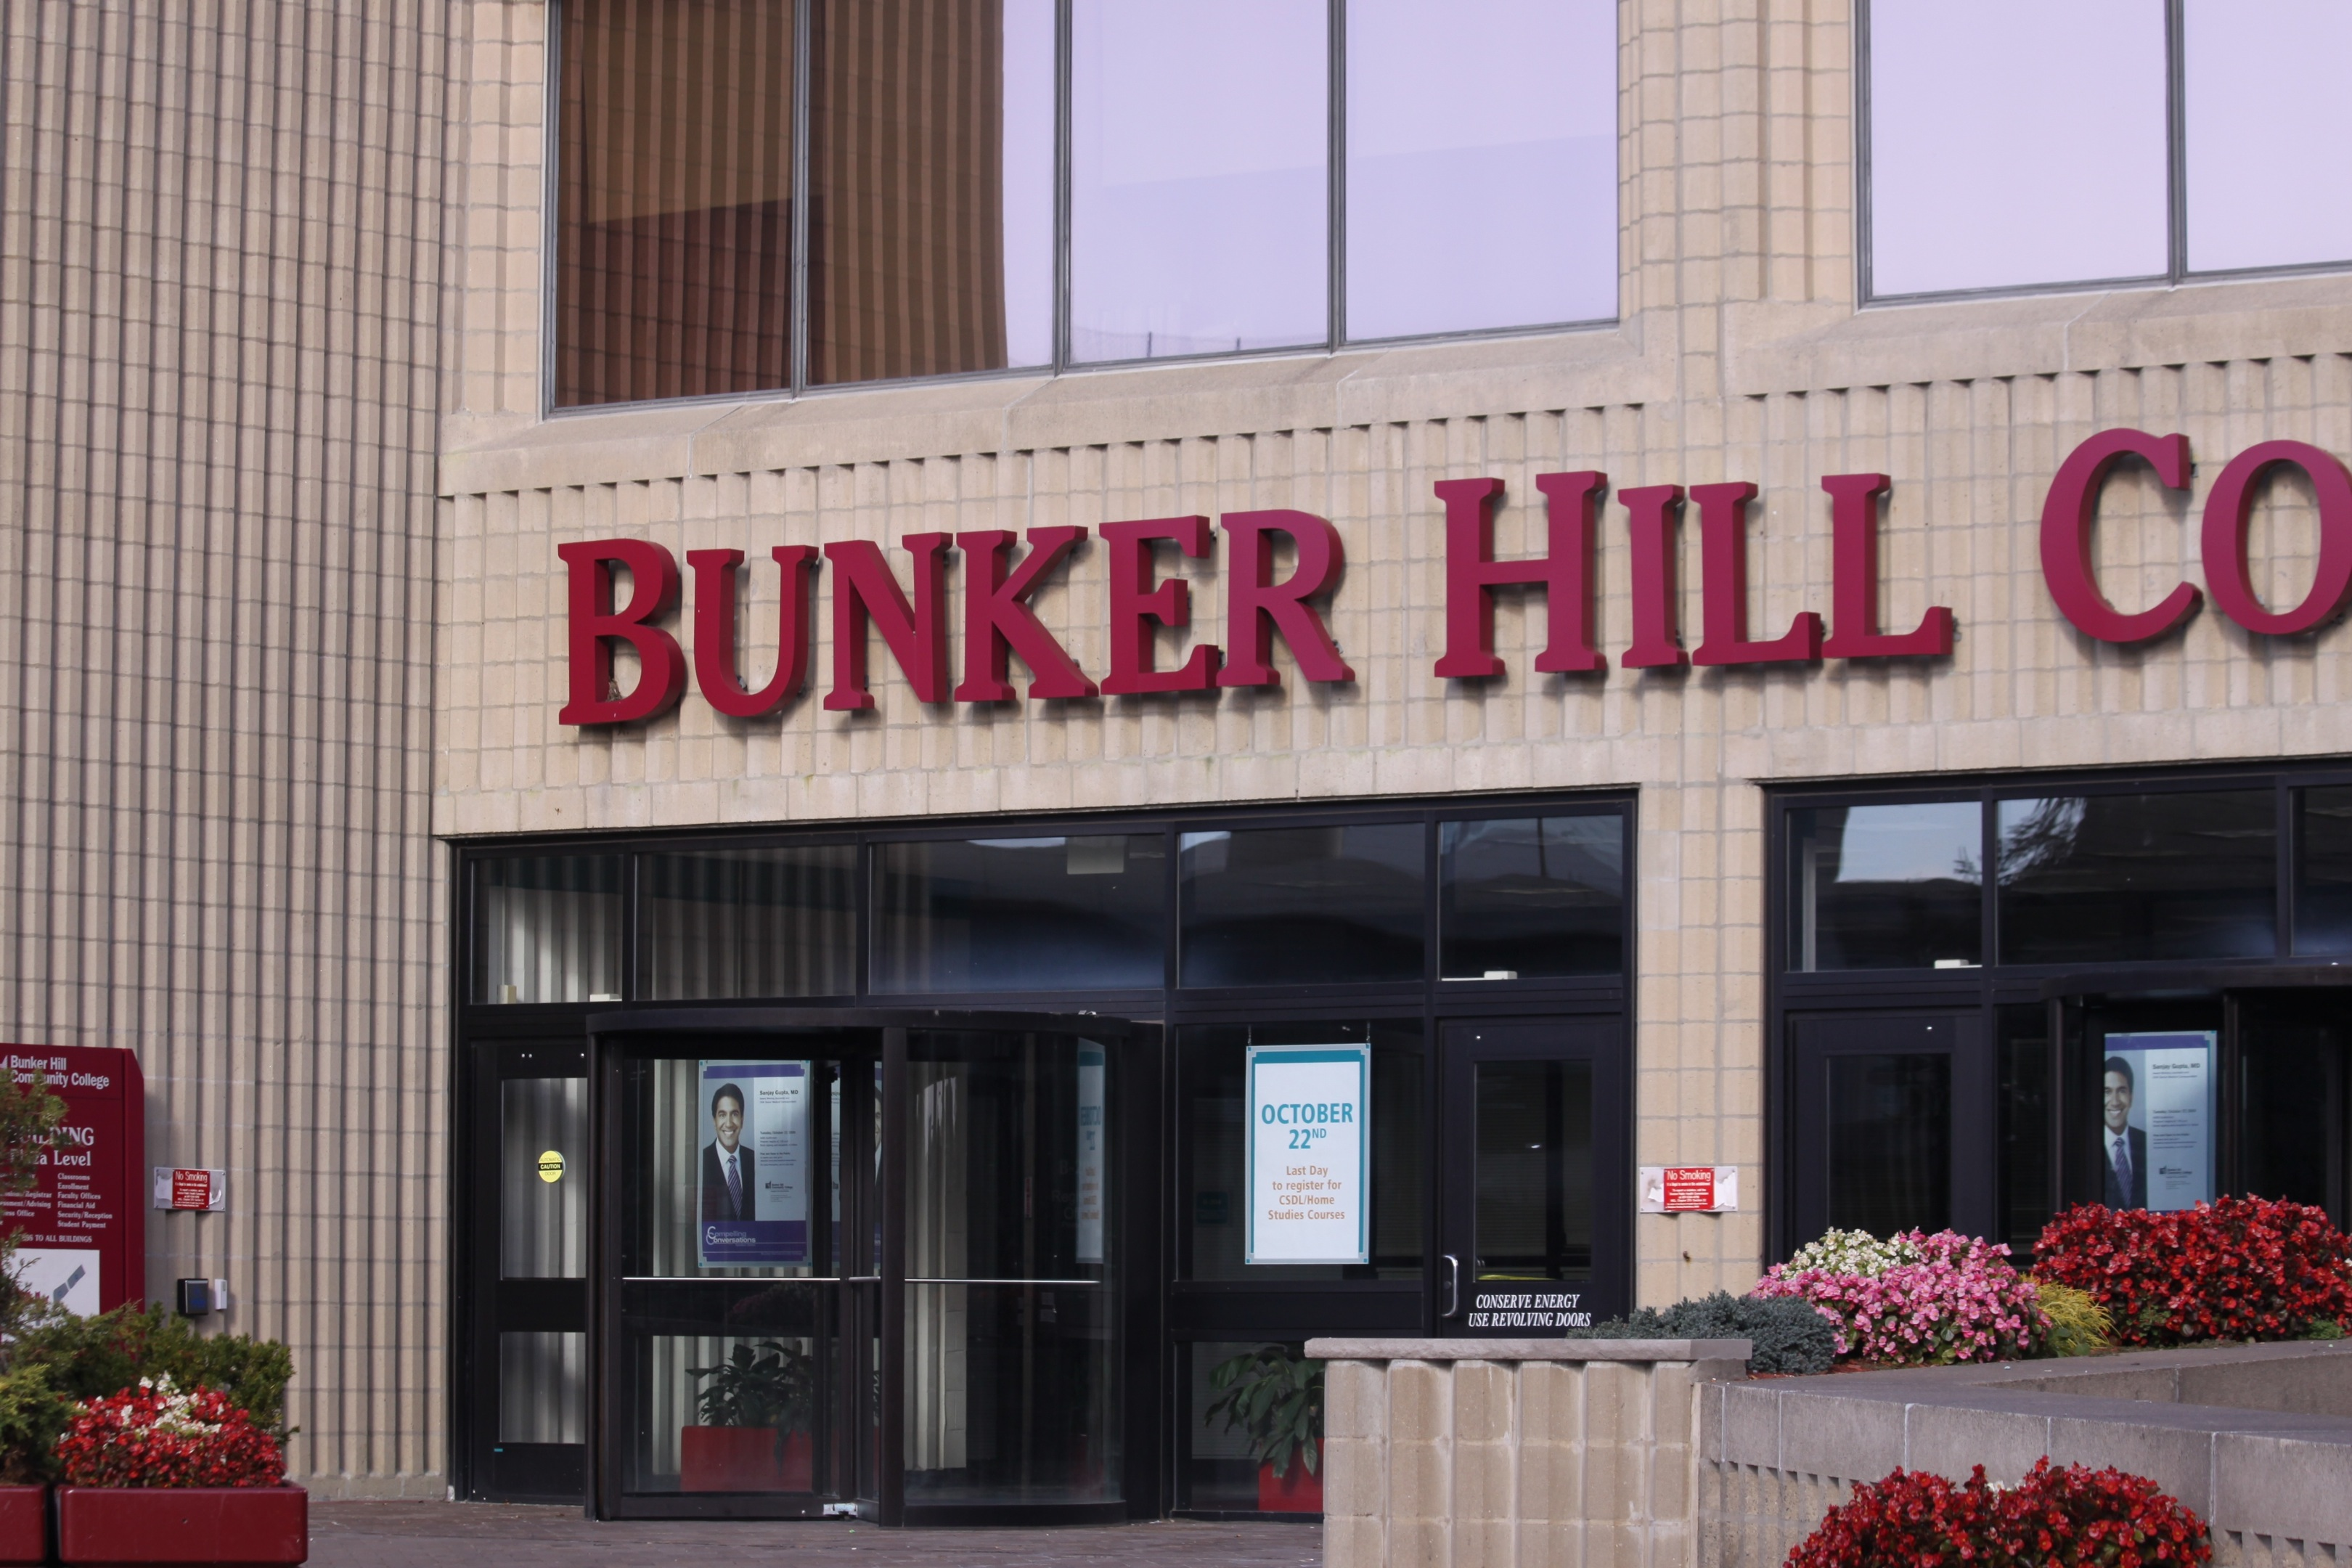 bunker hill community college application Admissions standards  she has participated in the maicei program at bunker hill community for 4  bunker hill community college serves as an educational and .